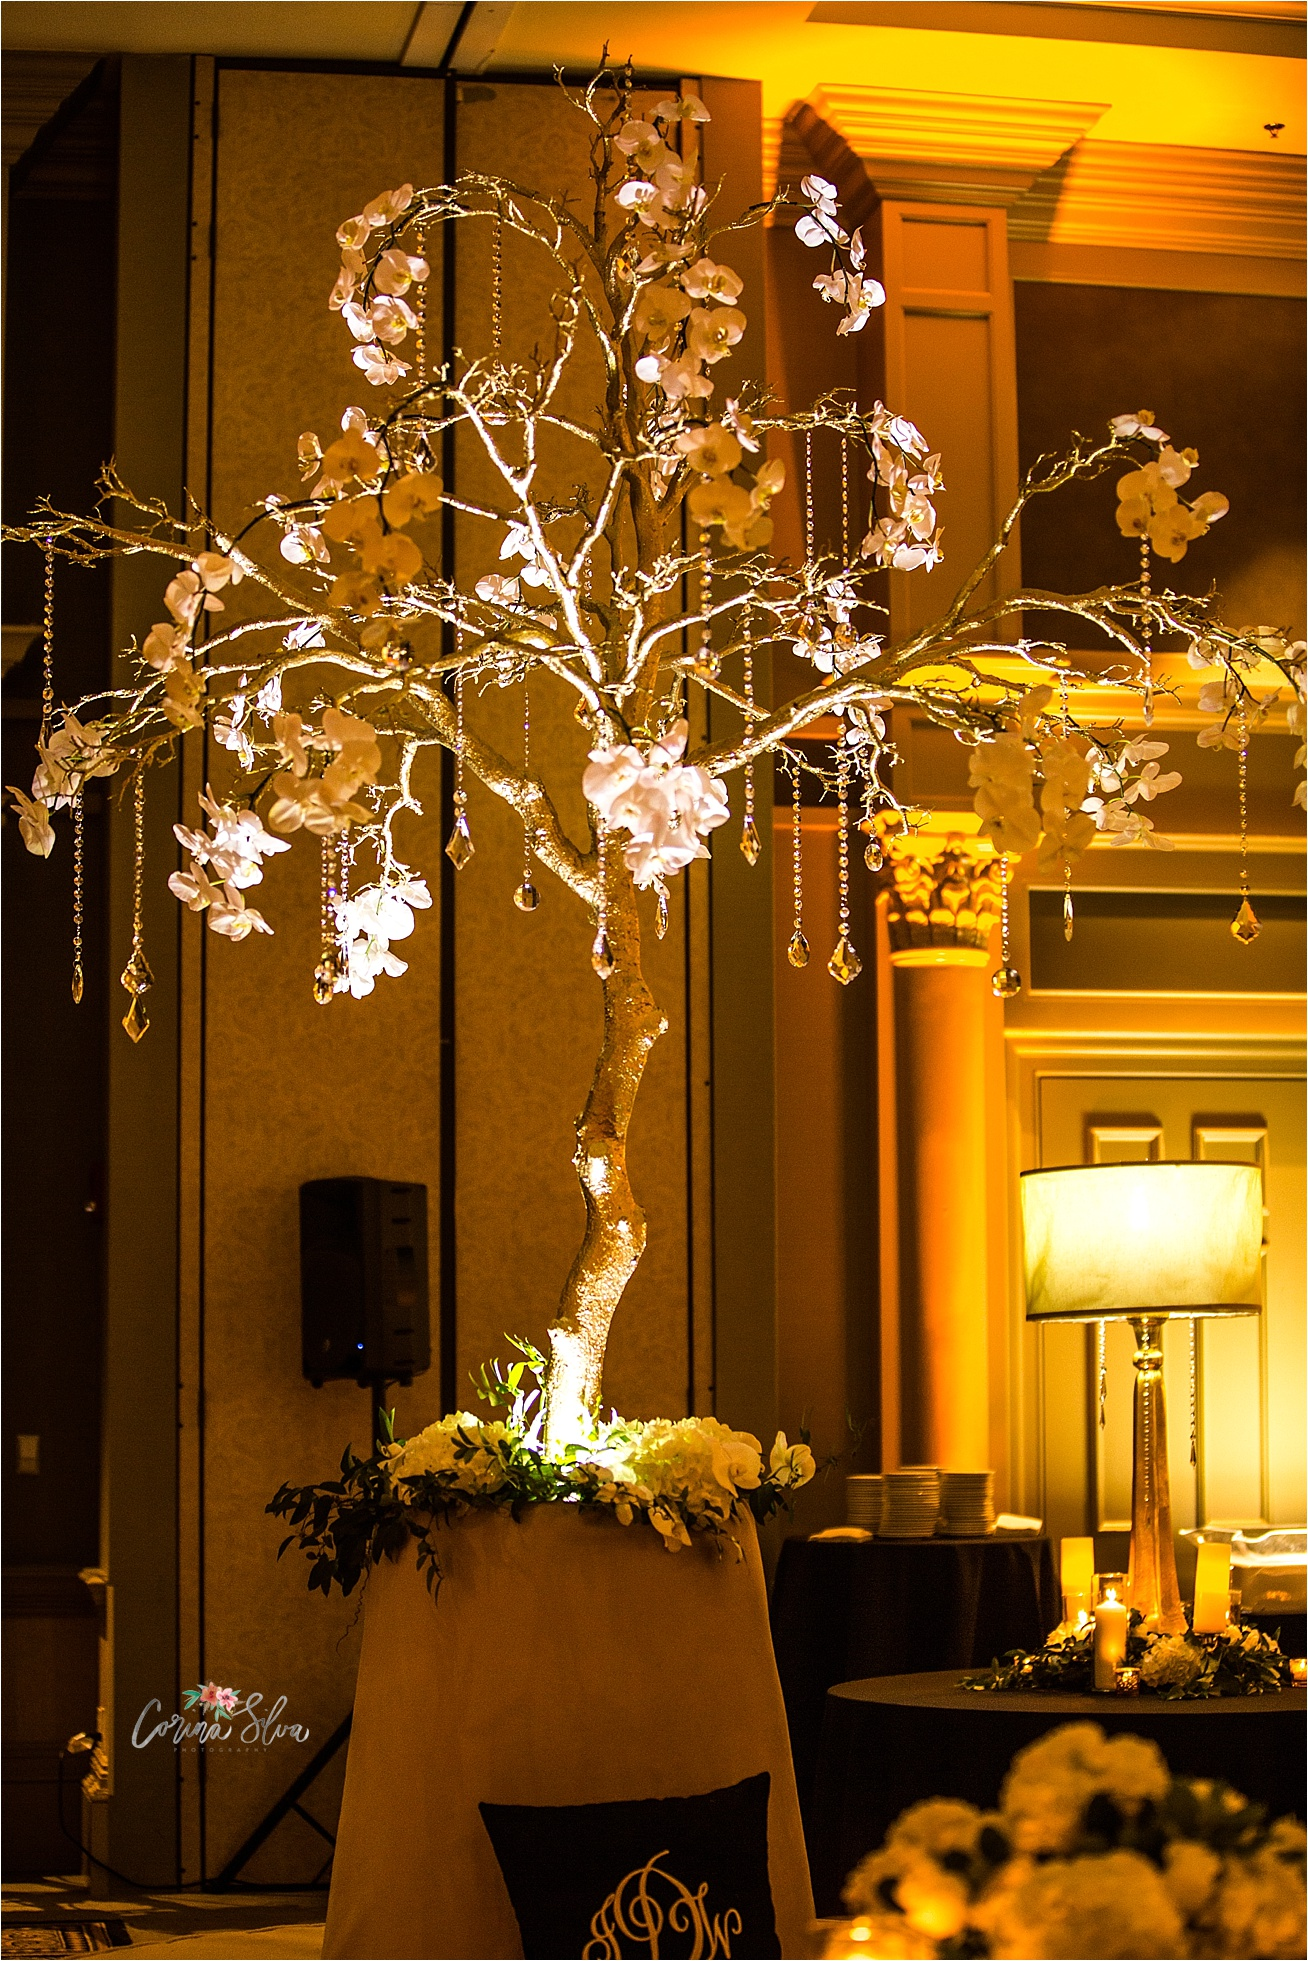 RSG-Event-and-Designs-luxury-wedding-decor-photos, Corina-Silva-Studios_0031.jpg